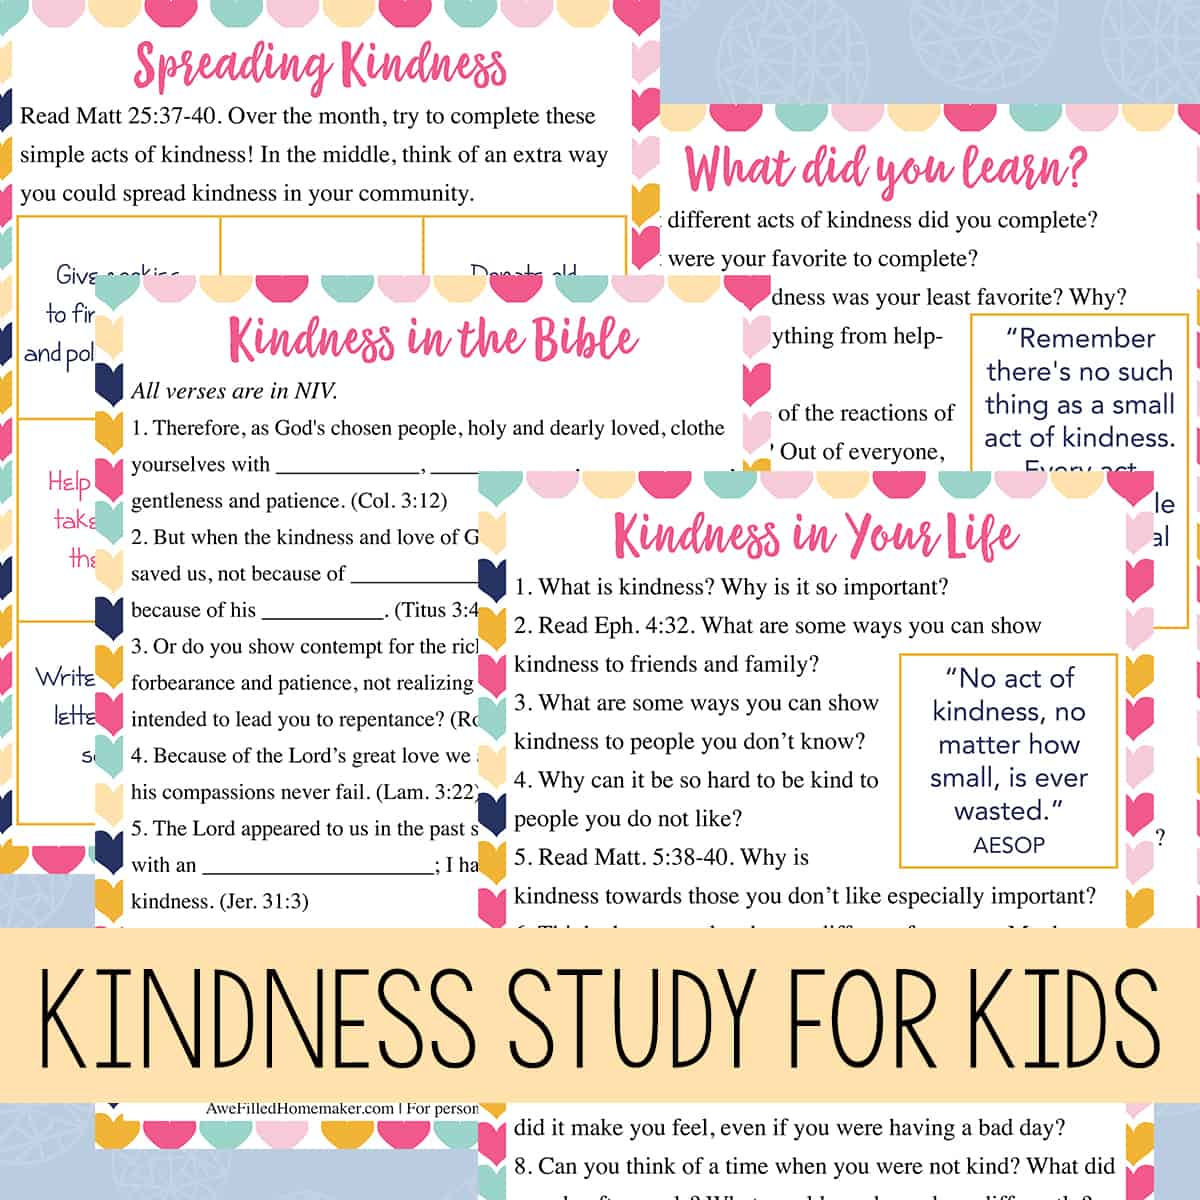 Kindness Study For Kids